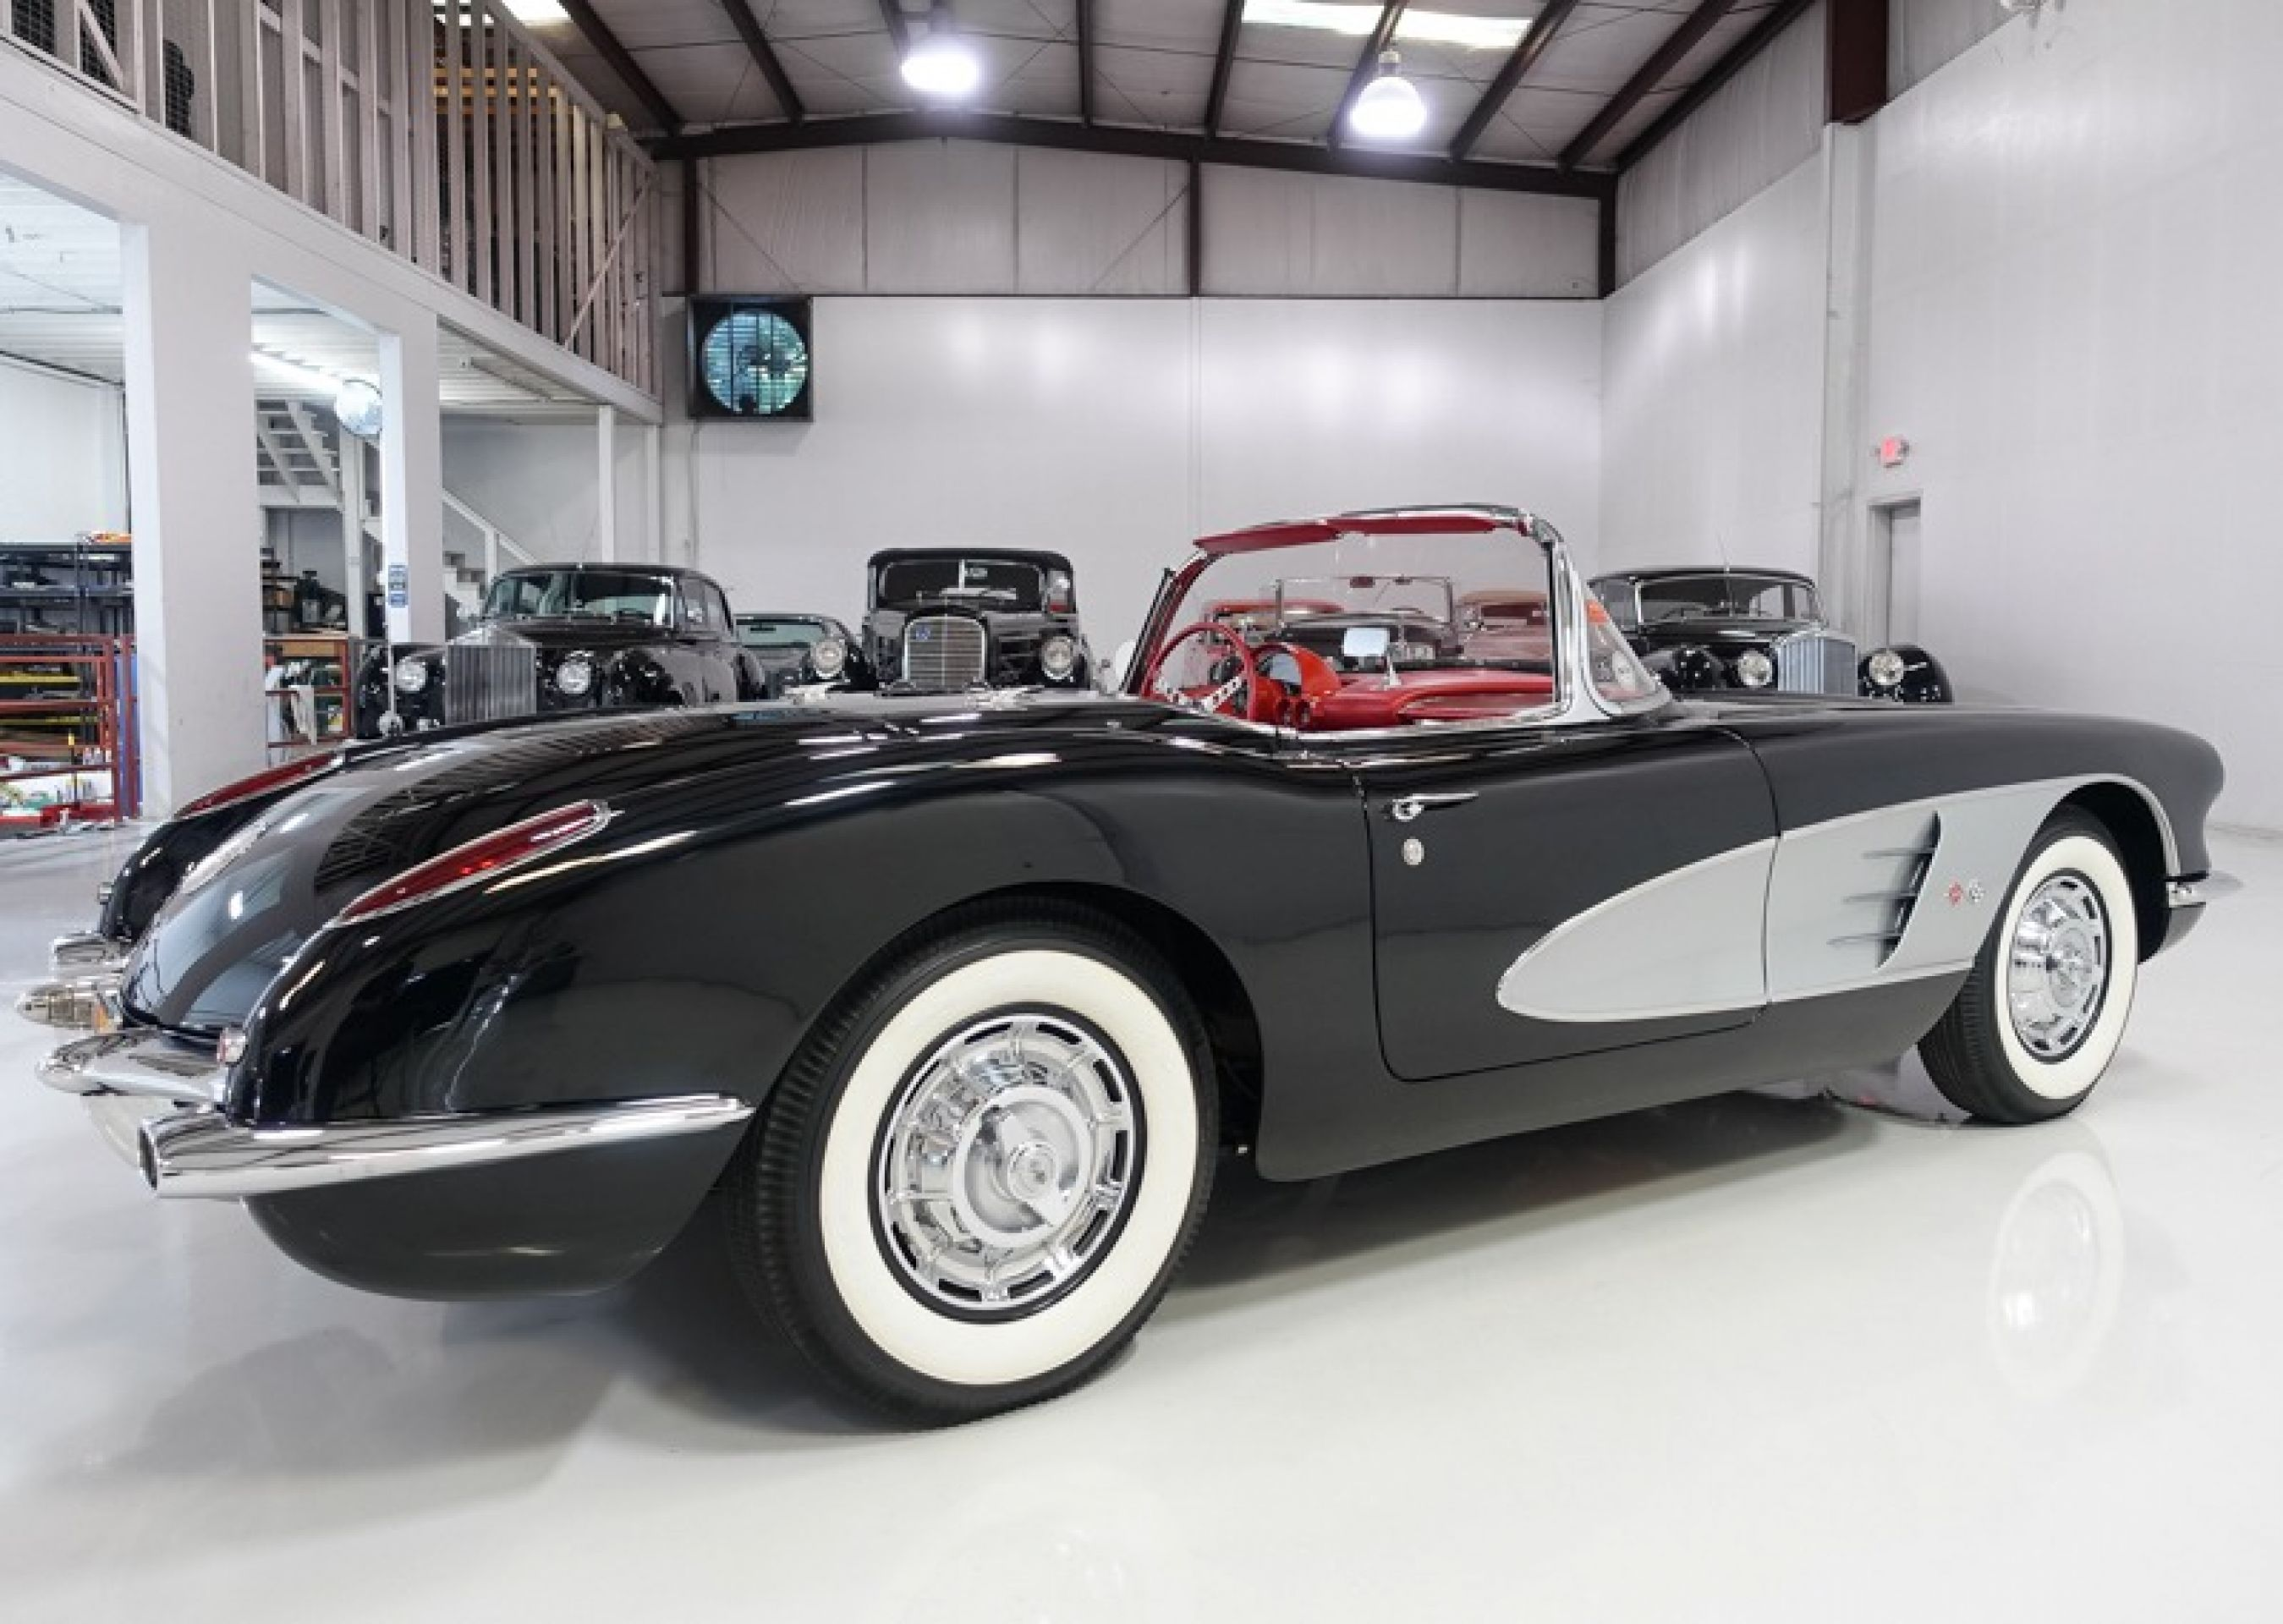 1959 Chevrolet Corvette Roadster